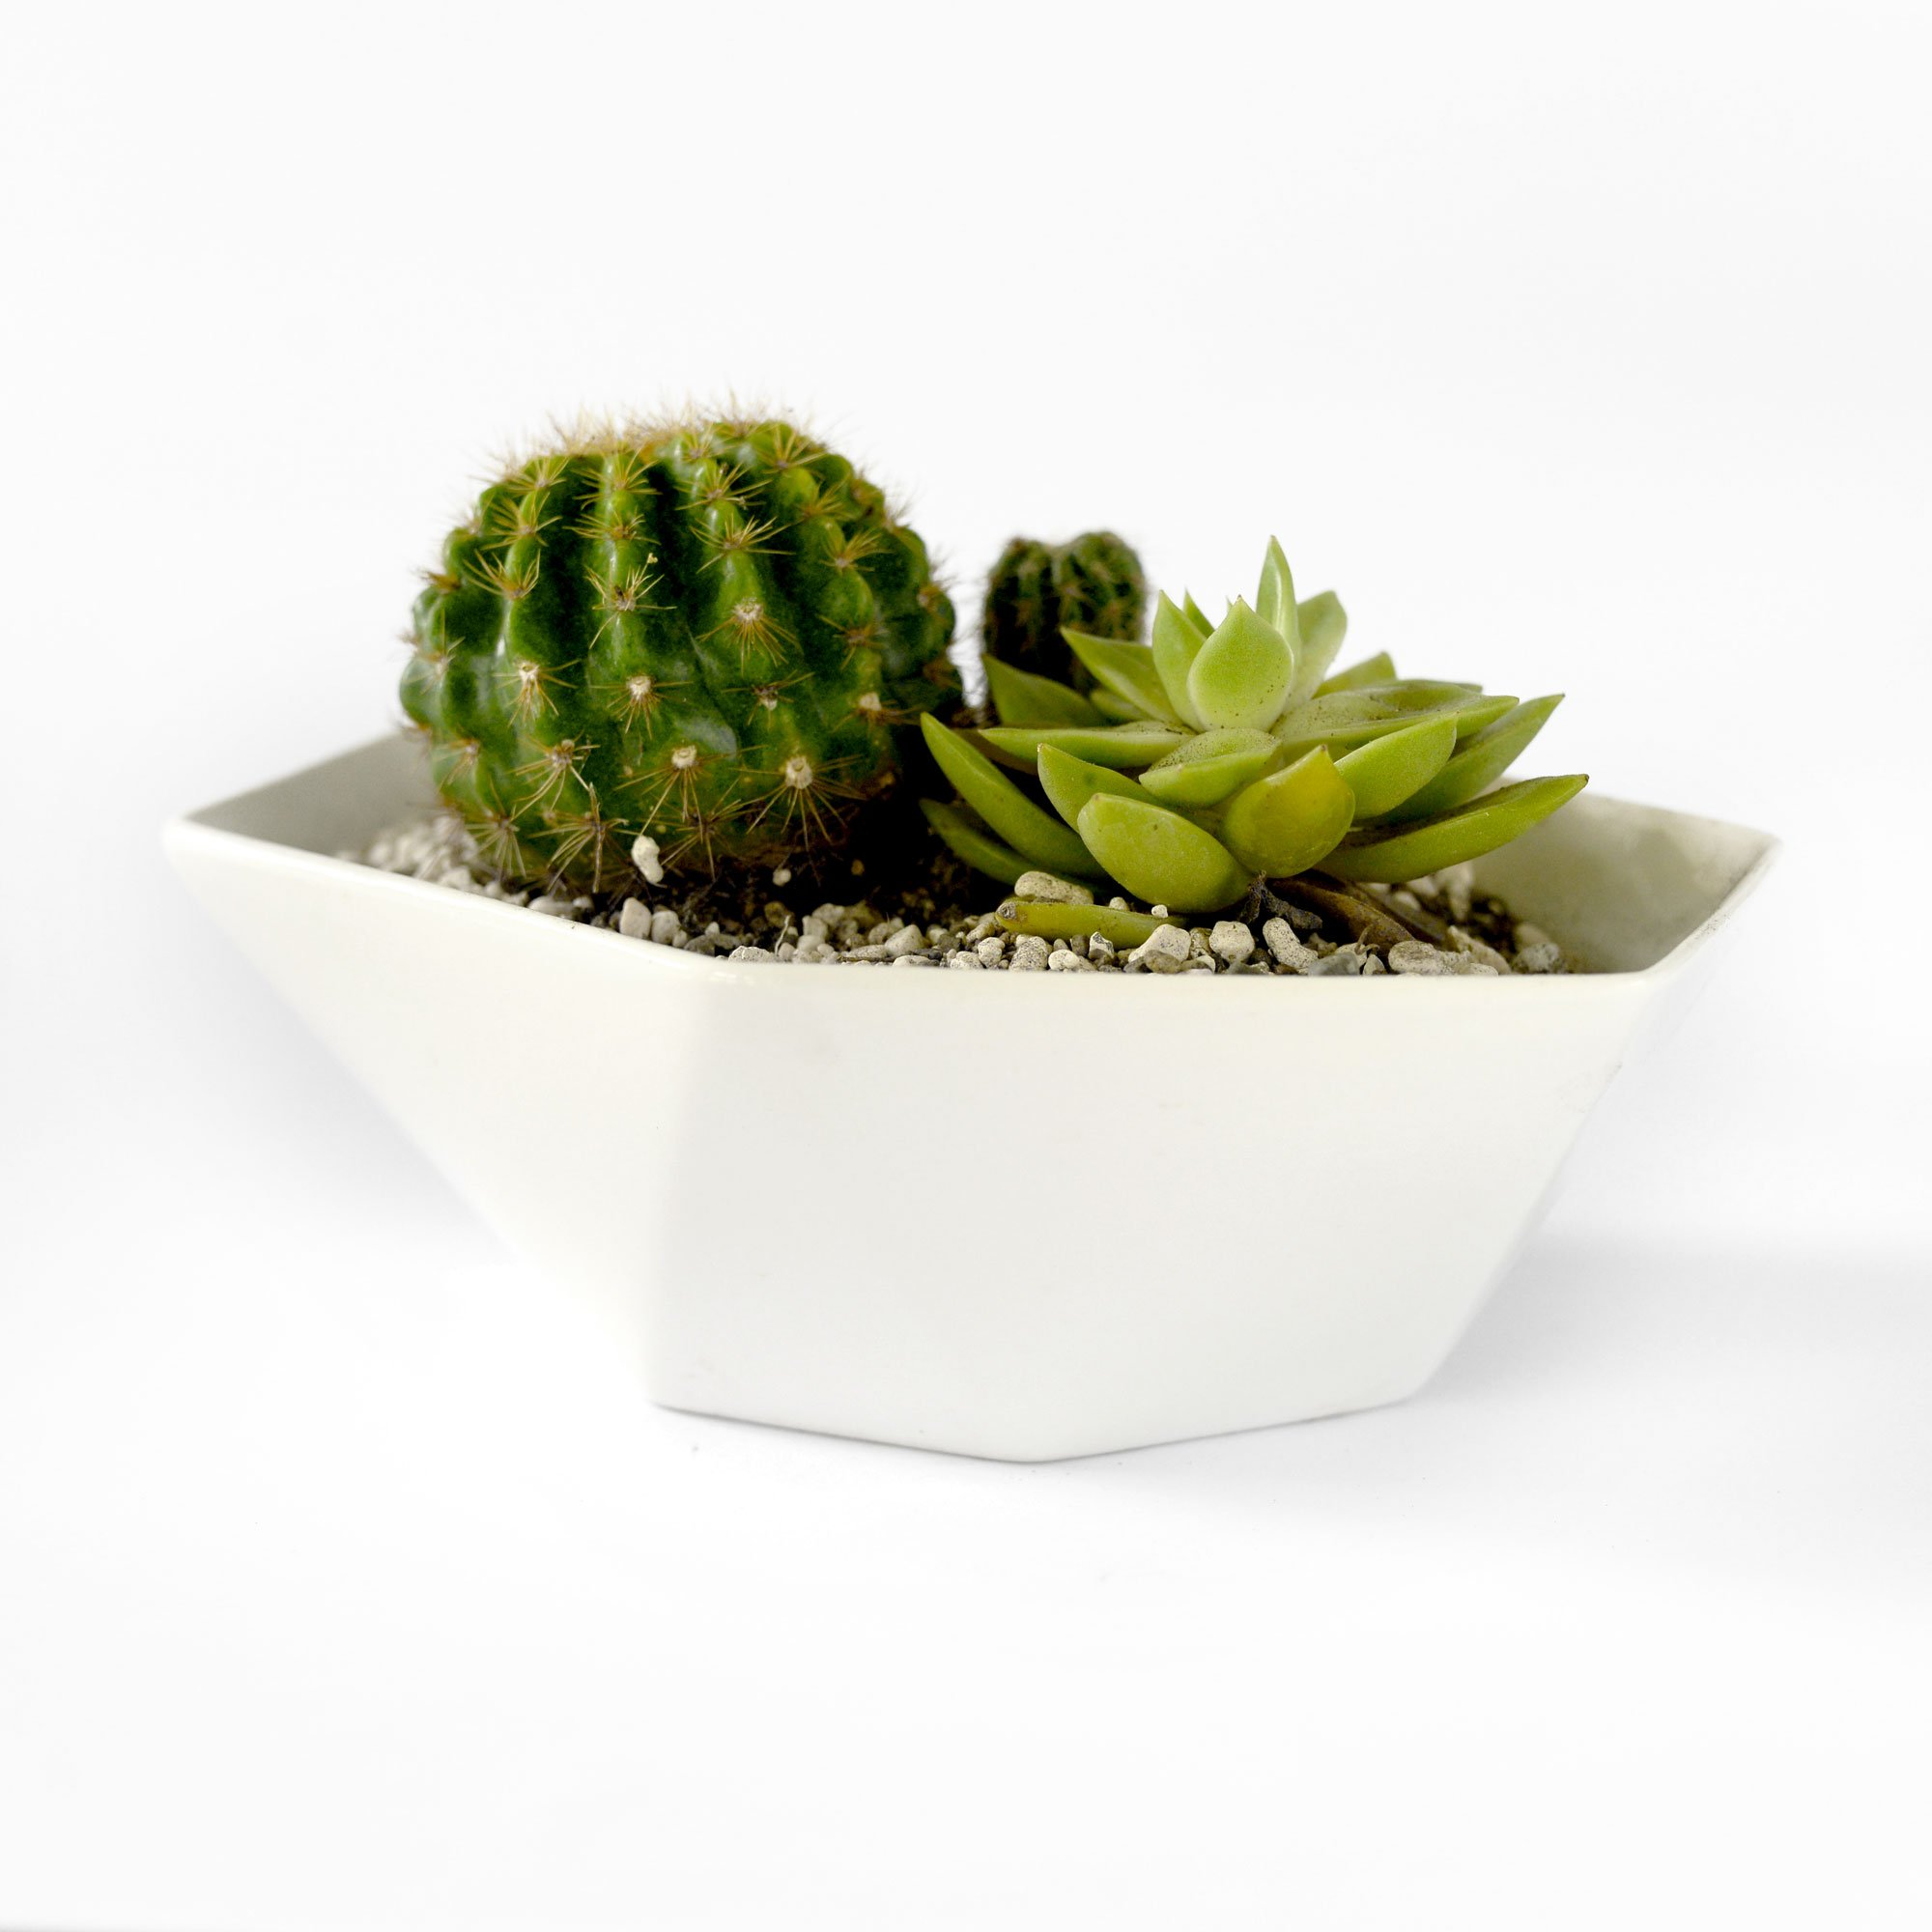 SilvineandSands 7 inch Geometric Minimalist White Planter Pot | Succulent and Flower Pot Container | Modern White Planter